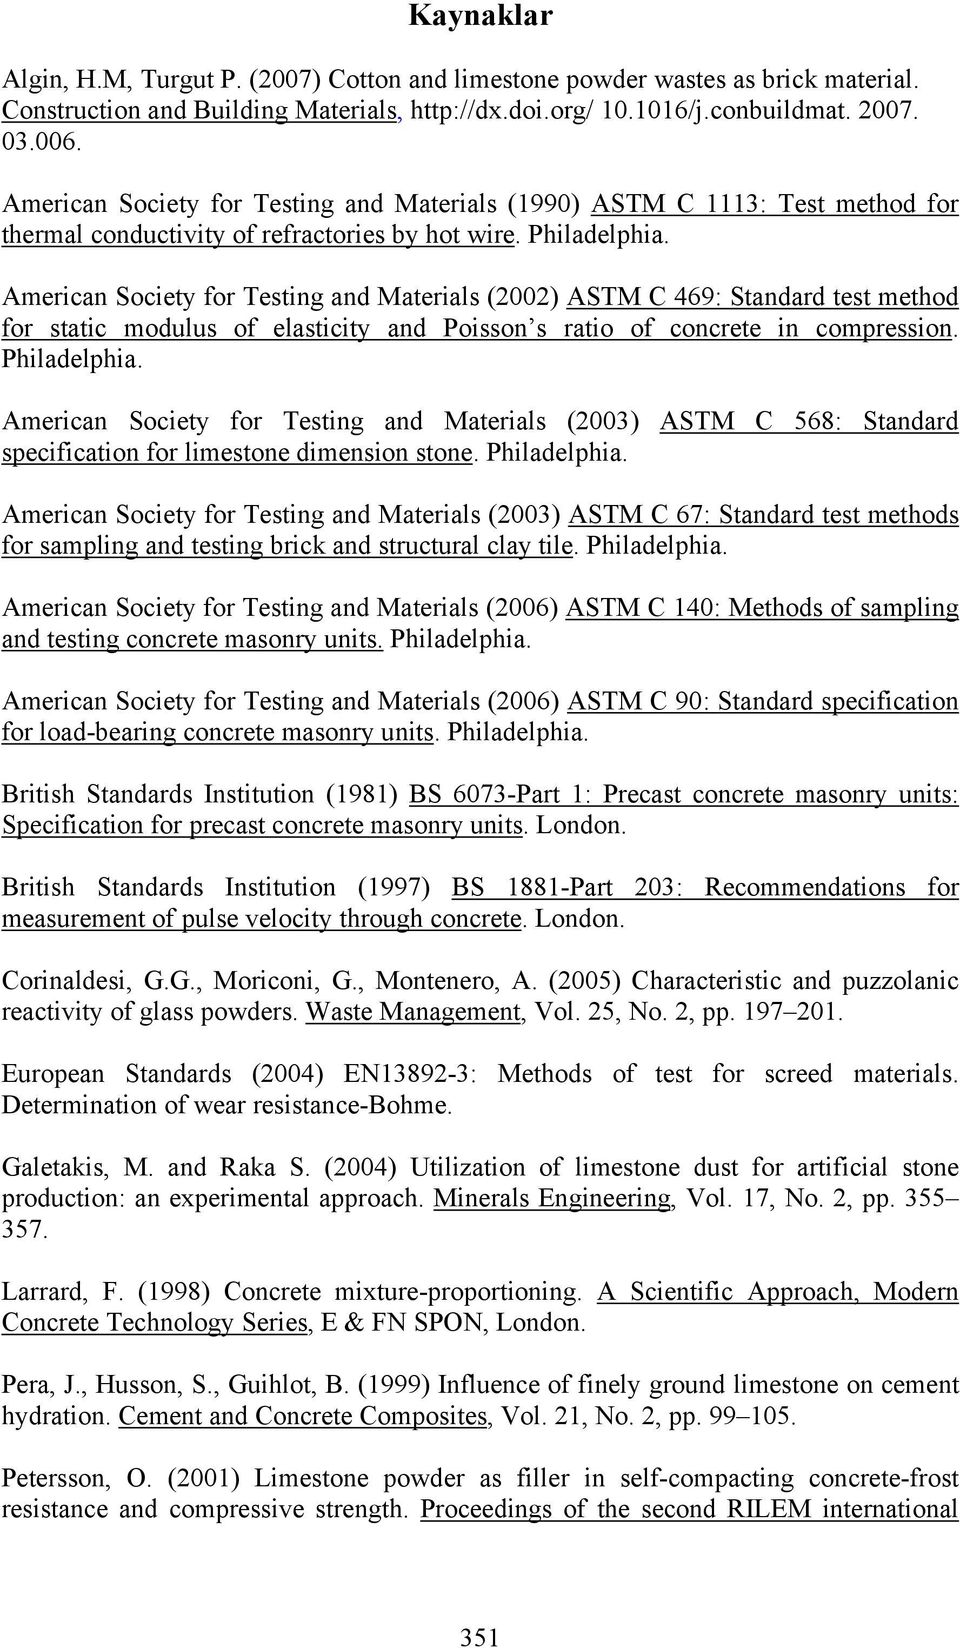 American Society for Testing and Materials (2002) ASTM C 469: Standard test method for static modulus of elasticity and Poisson s ratio of concrete in compression. Philadelphia.